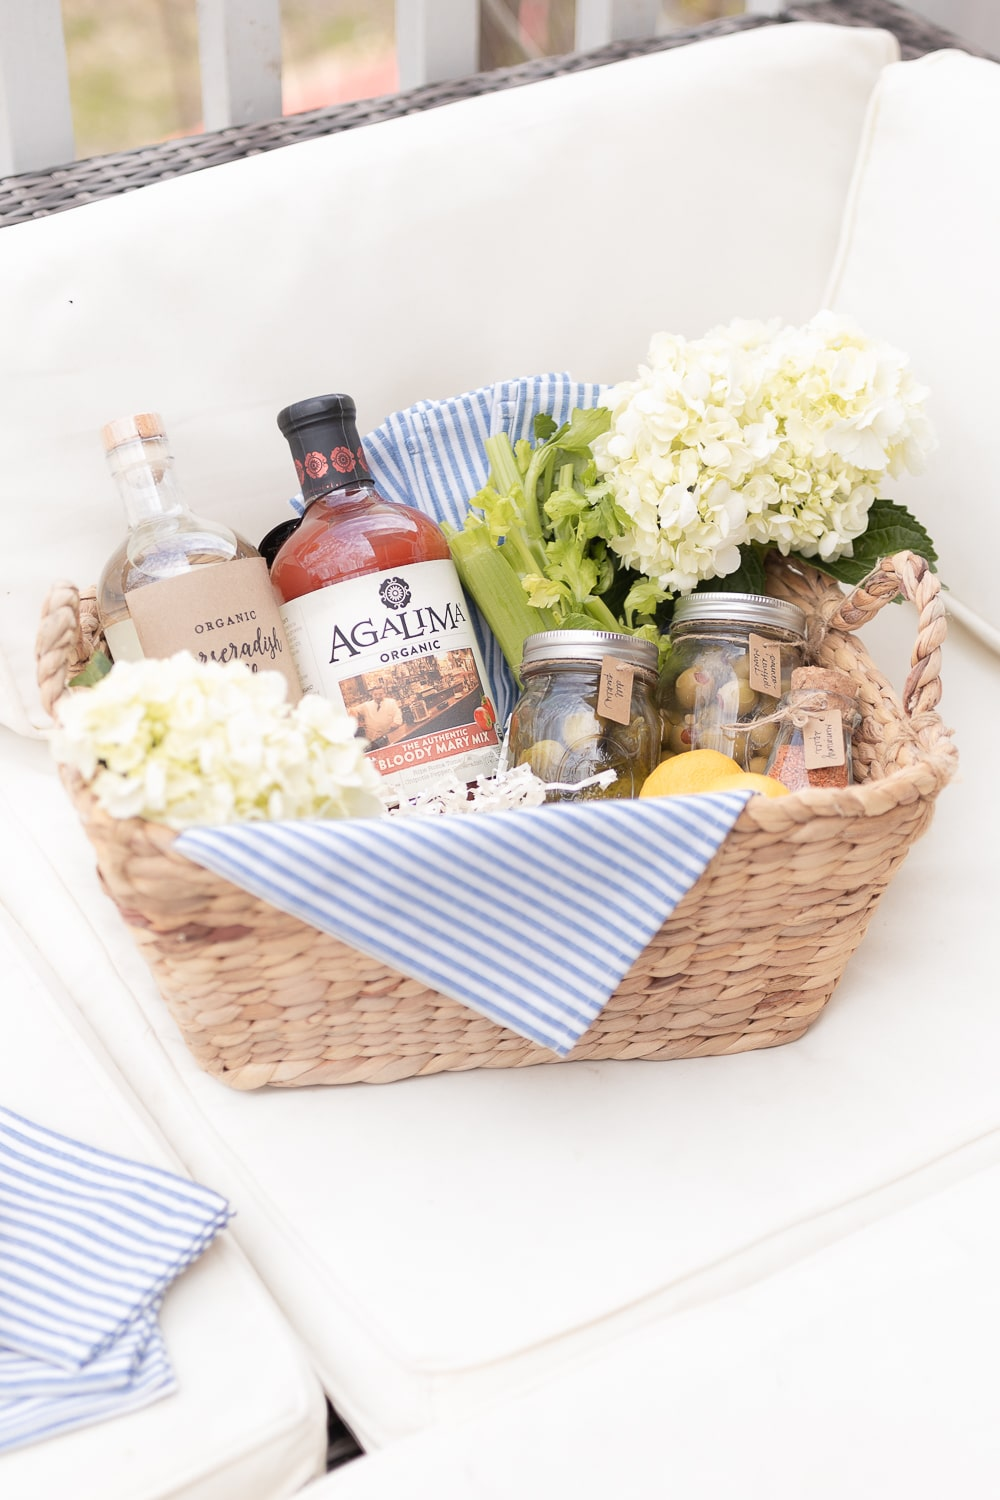 Southern lifestyle blogger Stephanie Ziajka shares one of her favorite DIY gift baskets (a bloody mary gift basket) on Diary of a Debutante